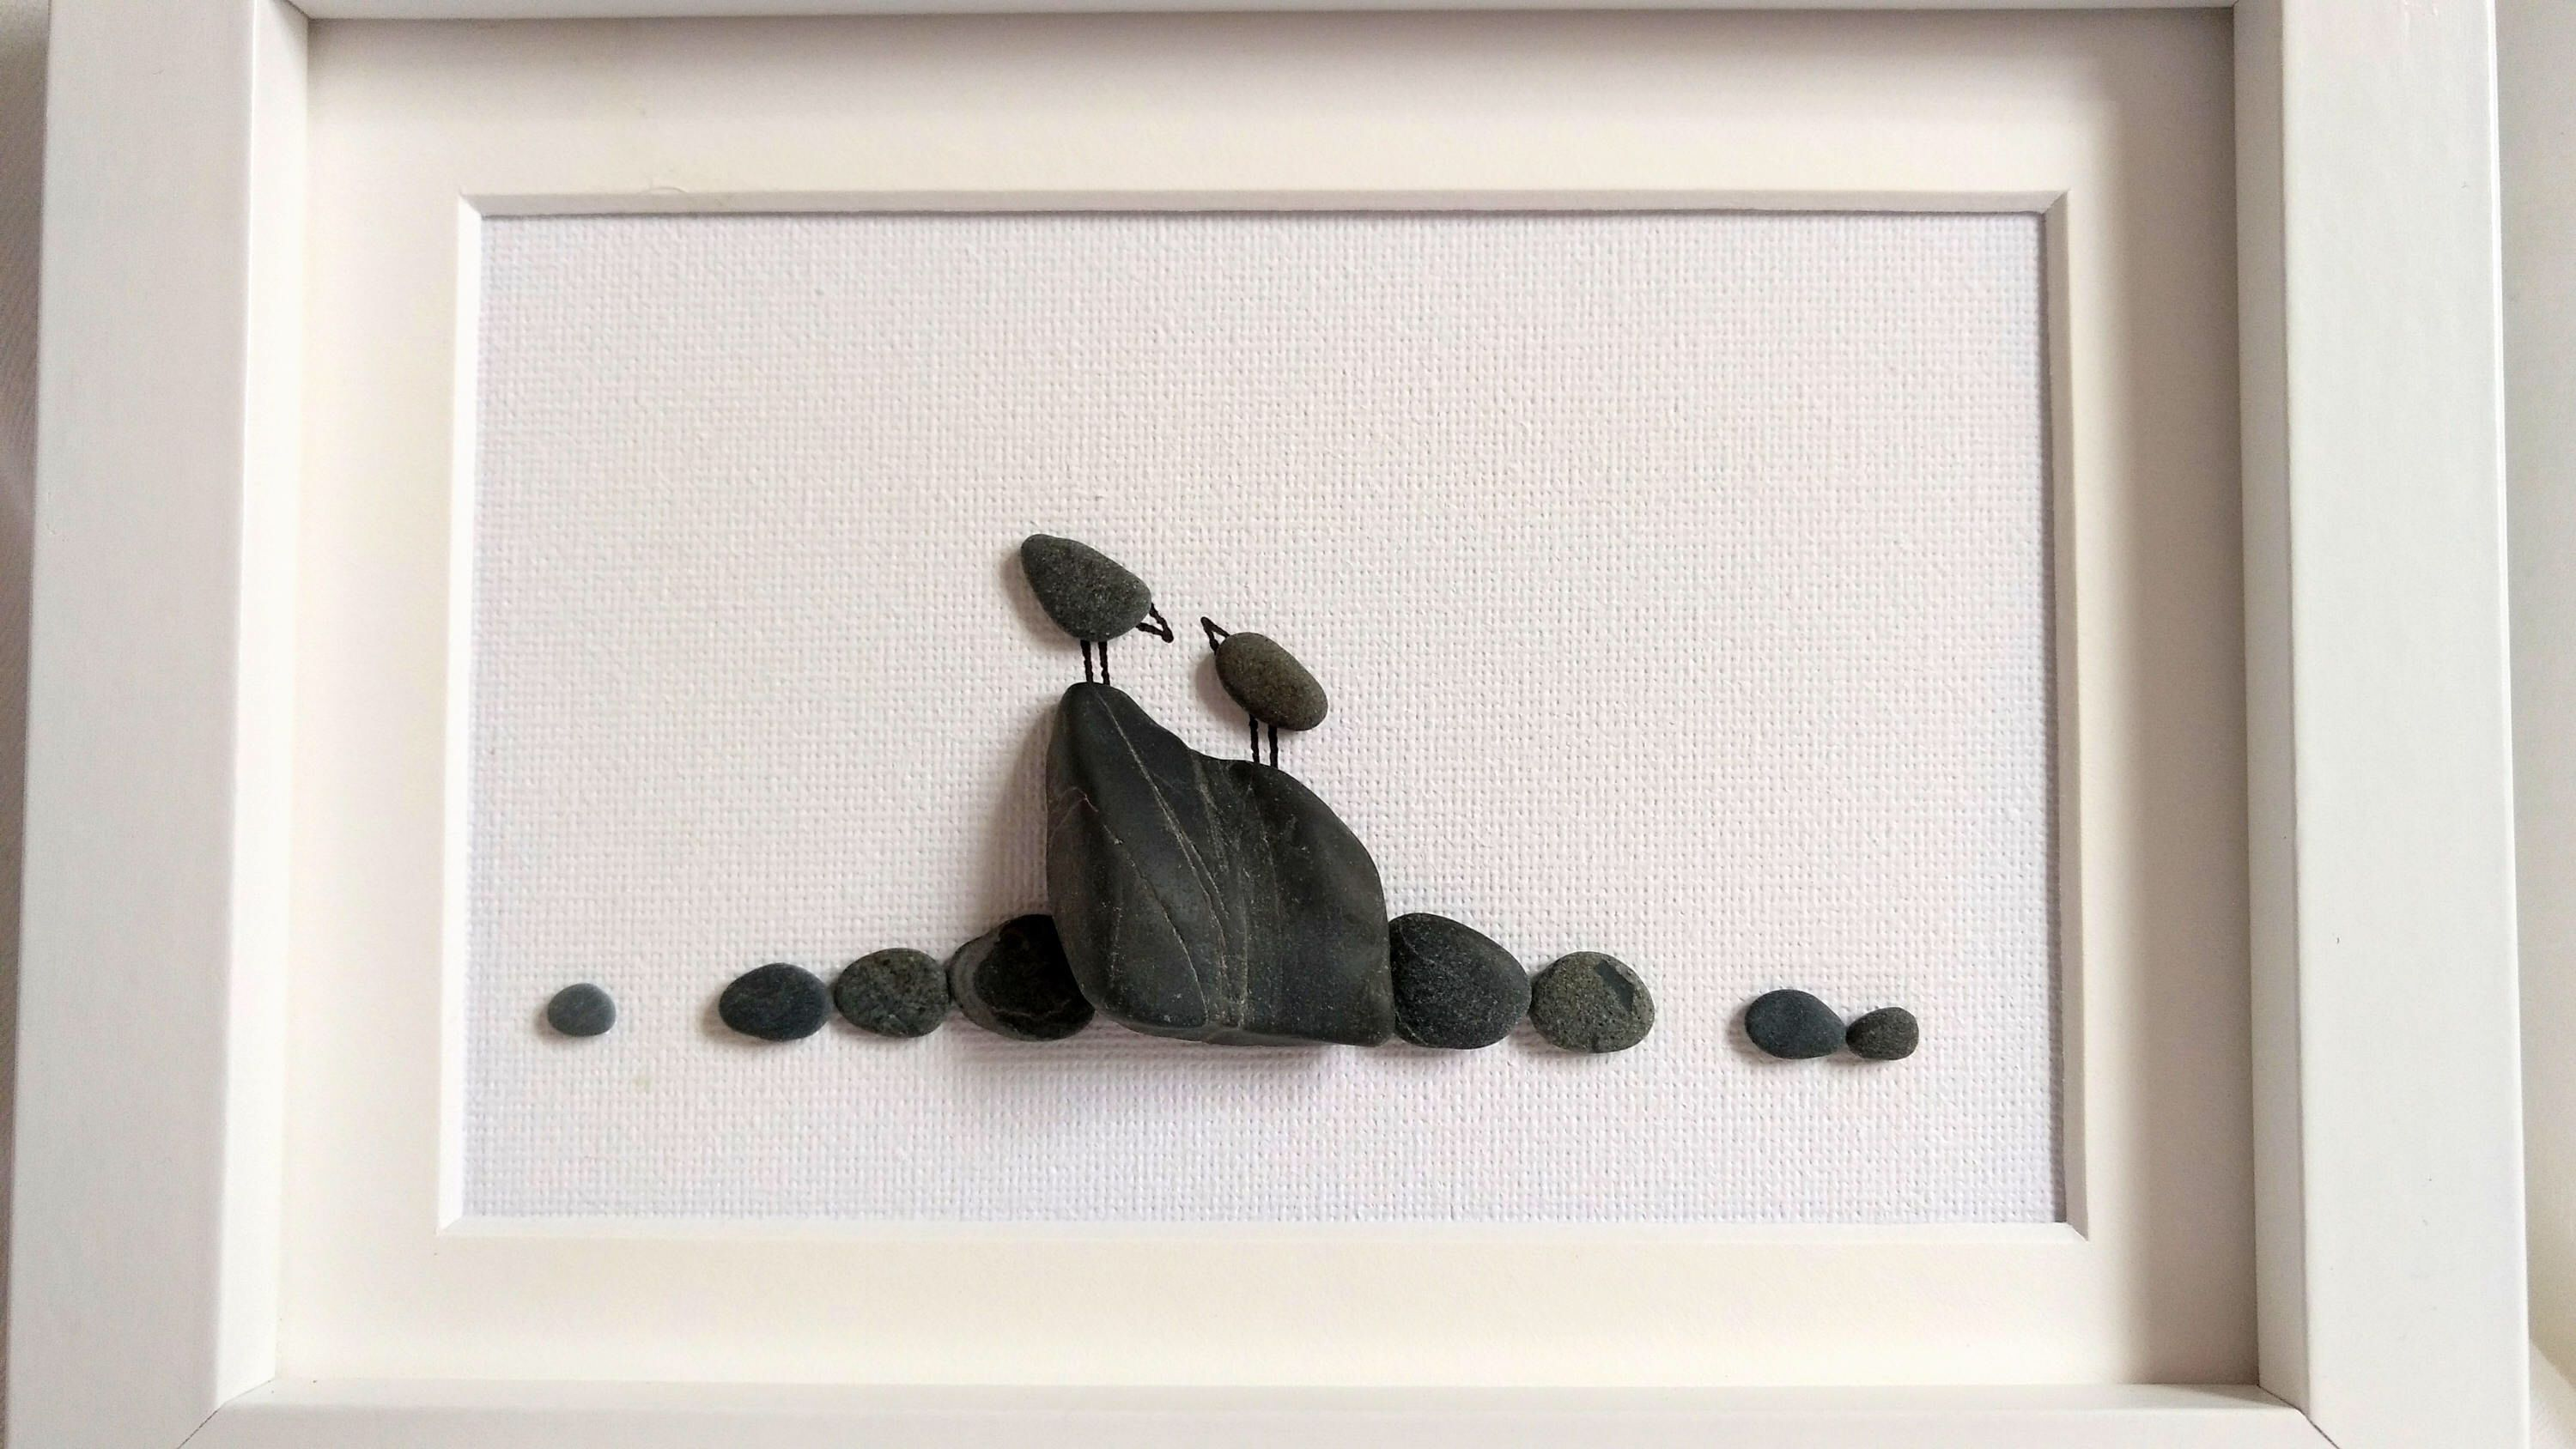 Unframed pebble art birthday present anniversary gift baby unframed pebble art birthday present anniversary gift baby shower nursery decor jeuxipadfo Image collections